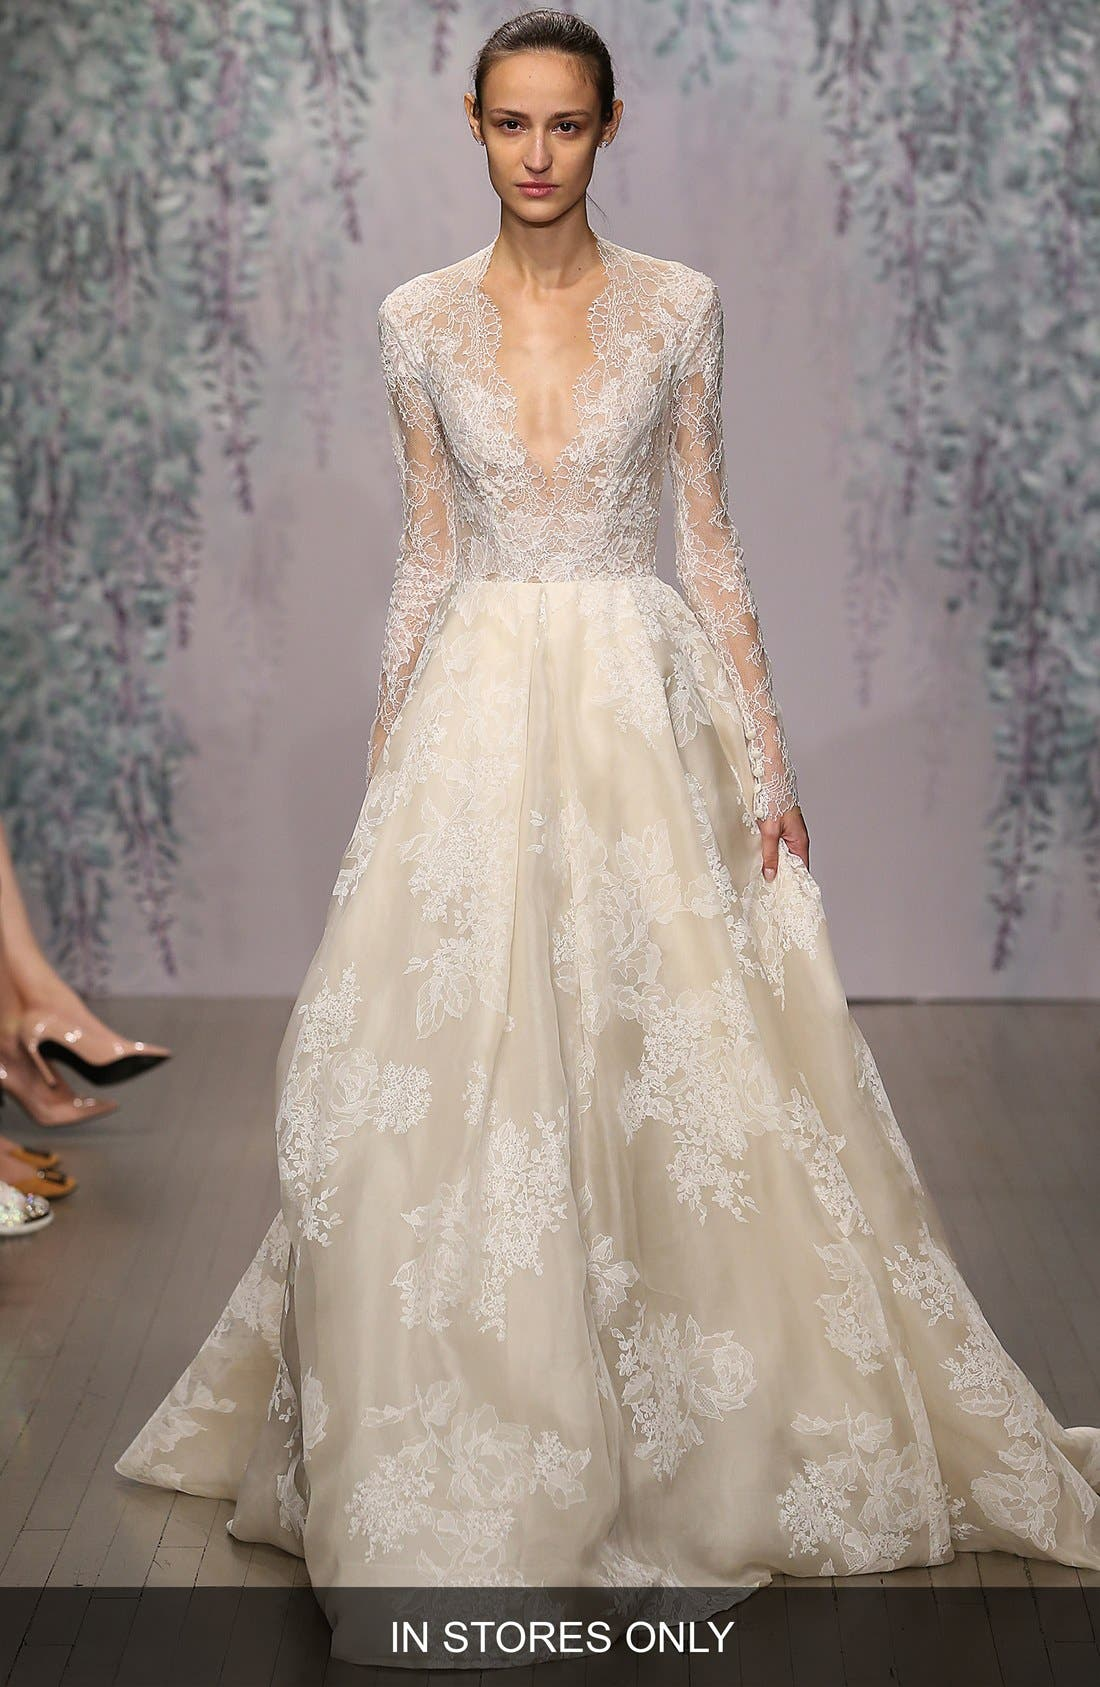 Monique Lhuillier 'Winslet' Plunging V-Neck Organza & Lace Ballgown Dress (In Stores Only)